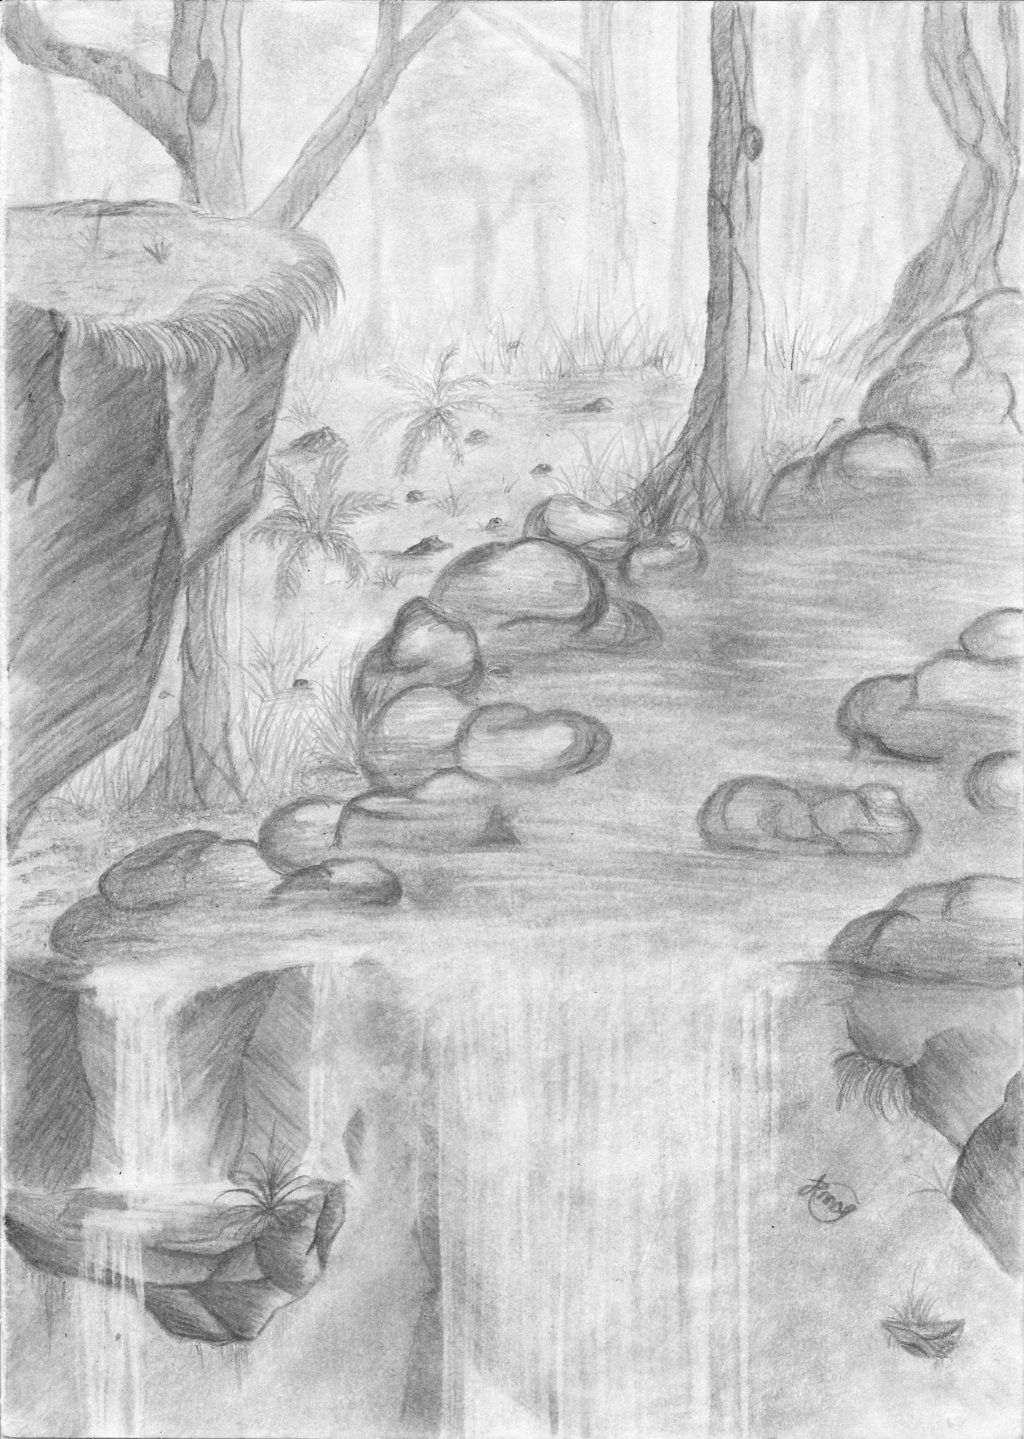 21 Savory Landscaping Drawing Easy You Have To Know Landscape Pencil Drawings Waterfall Drawing Nature Sketches Pencil